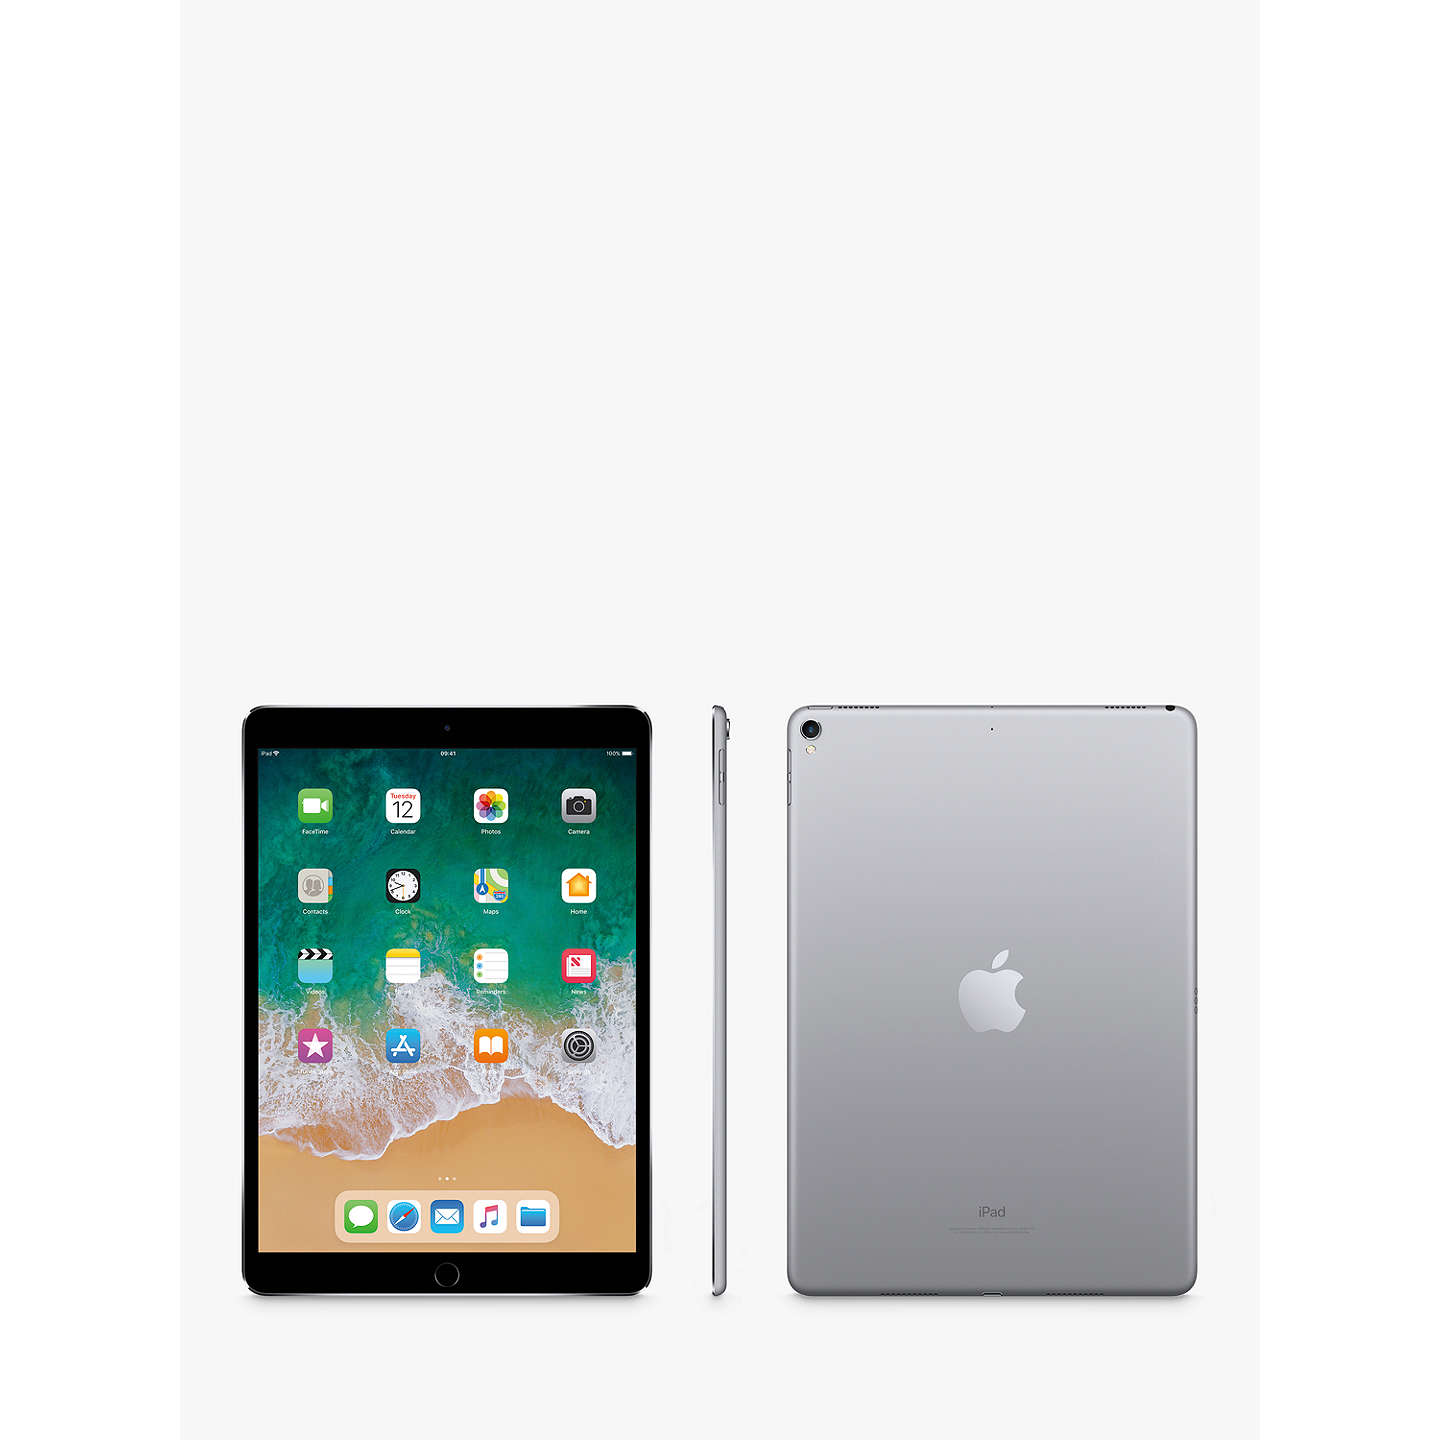 "Buy2017 Apple iPad Pro 10.5"", A10X Fusion, iOS11, Wi-Fi, 64GB, Space Grey Online at johnlewis.com"